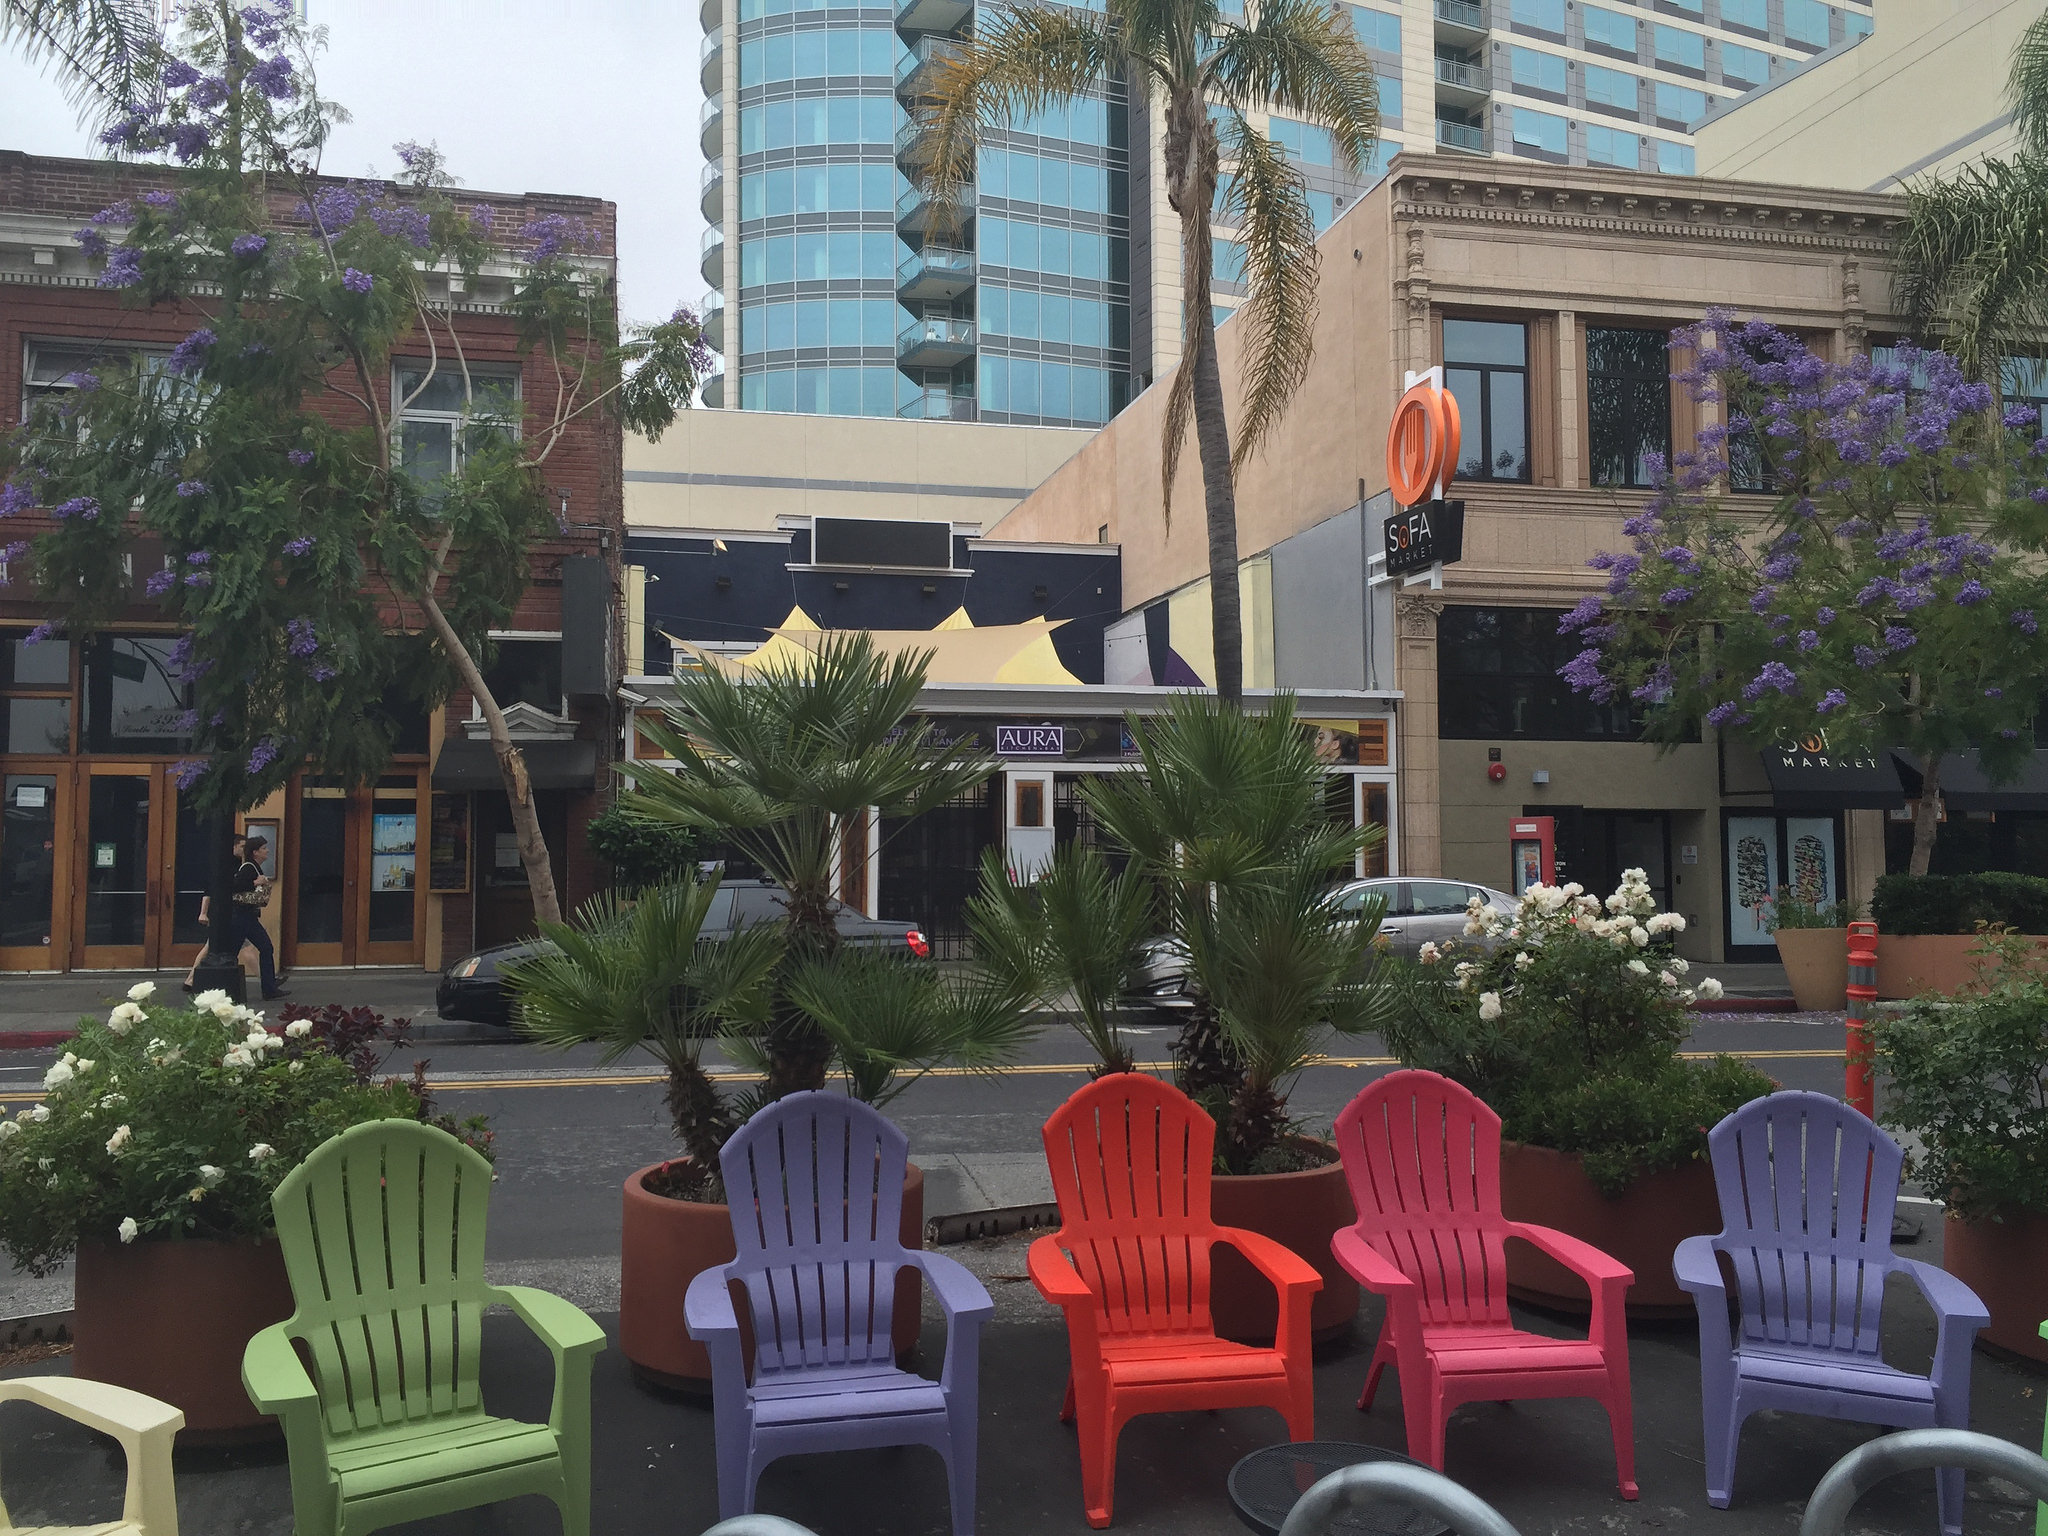 Microgrants help make San Jose more awesome $1,000 at a time